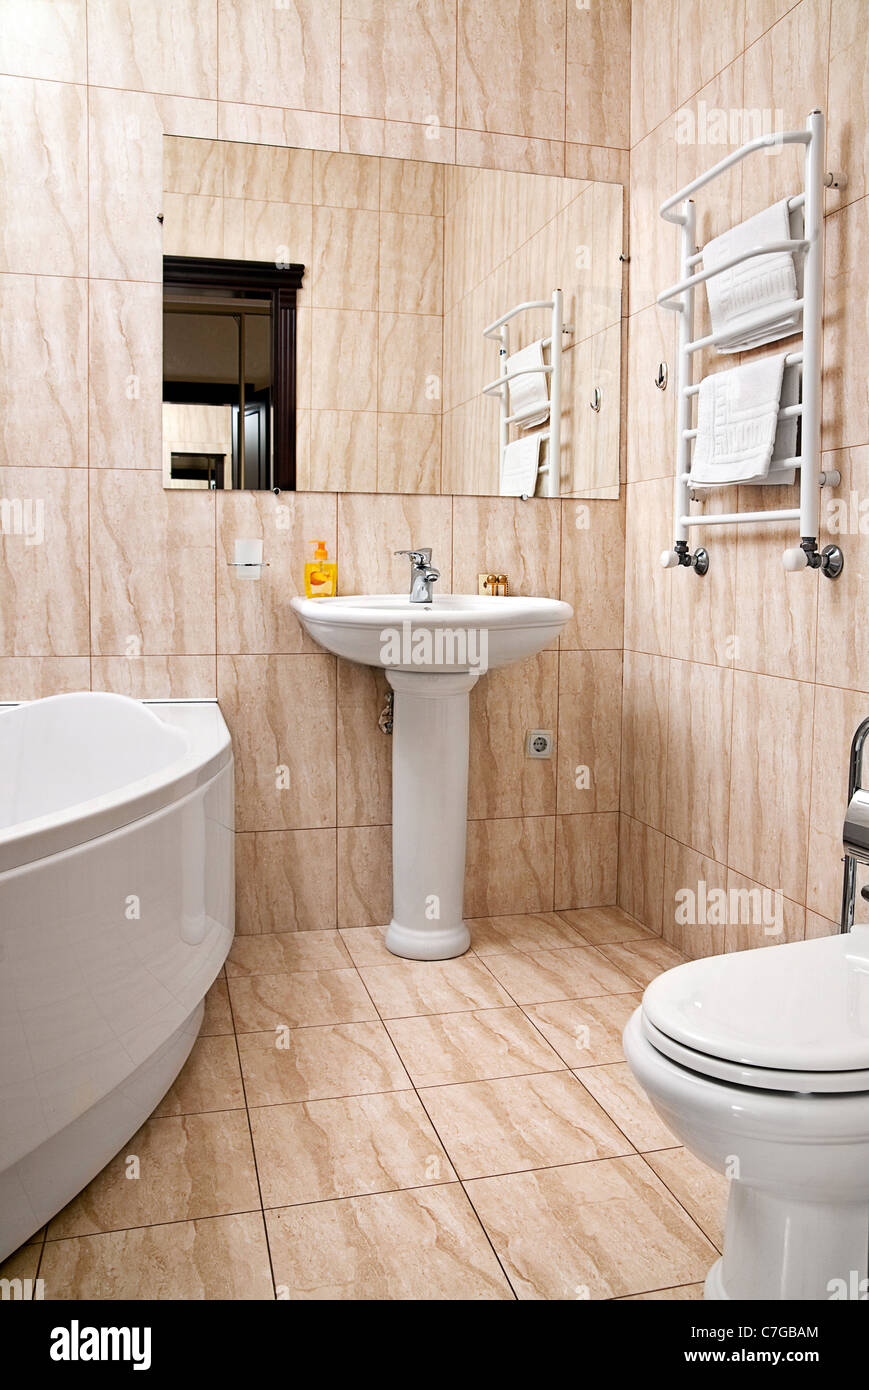 Detail interior bathroom with mirror and accessories - Stock Image